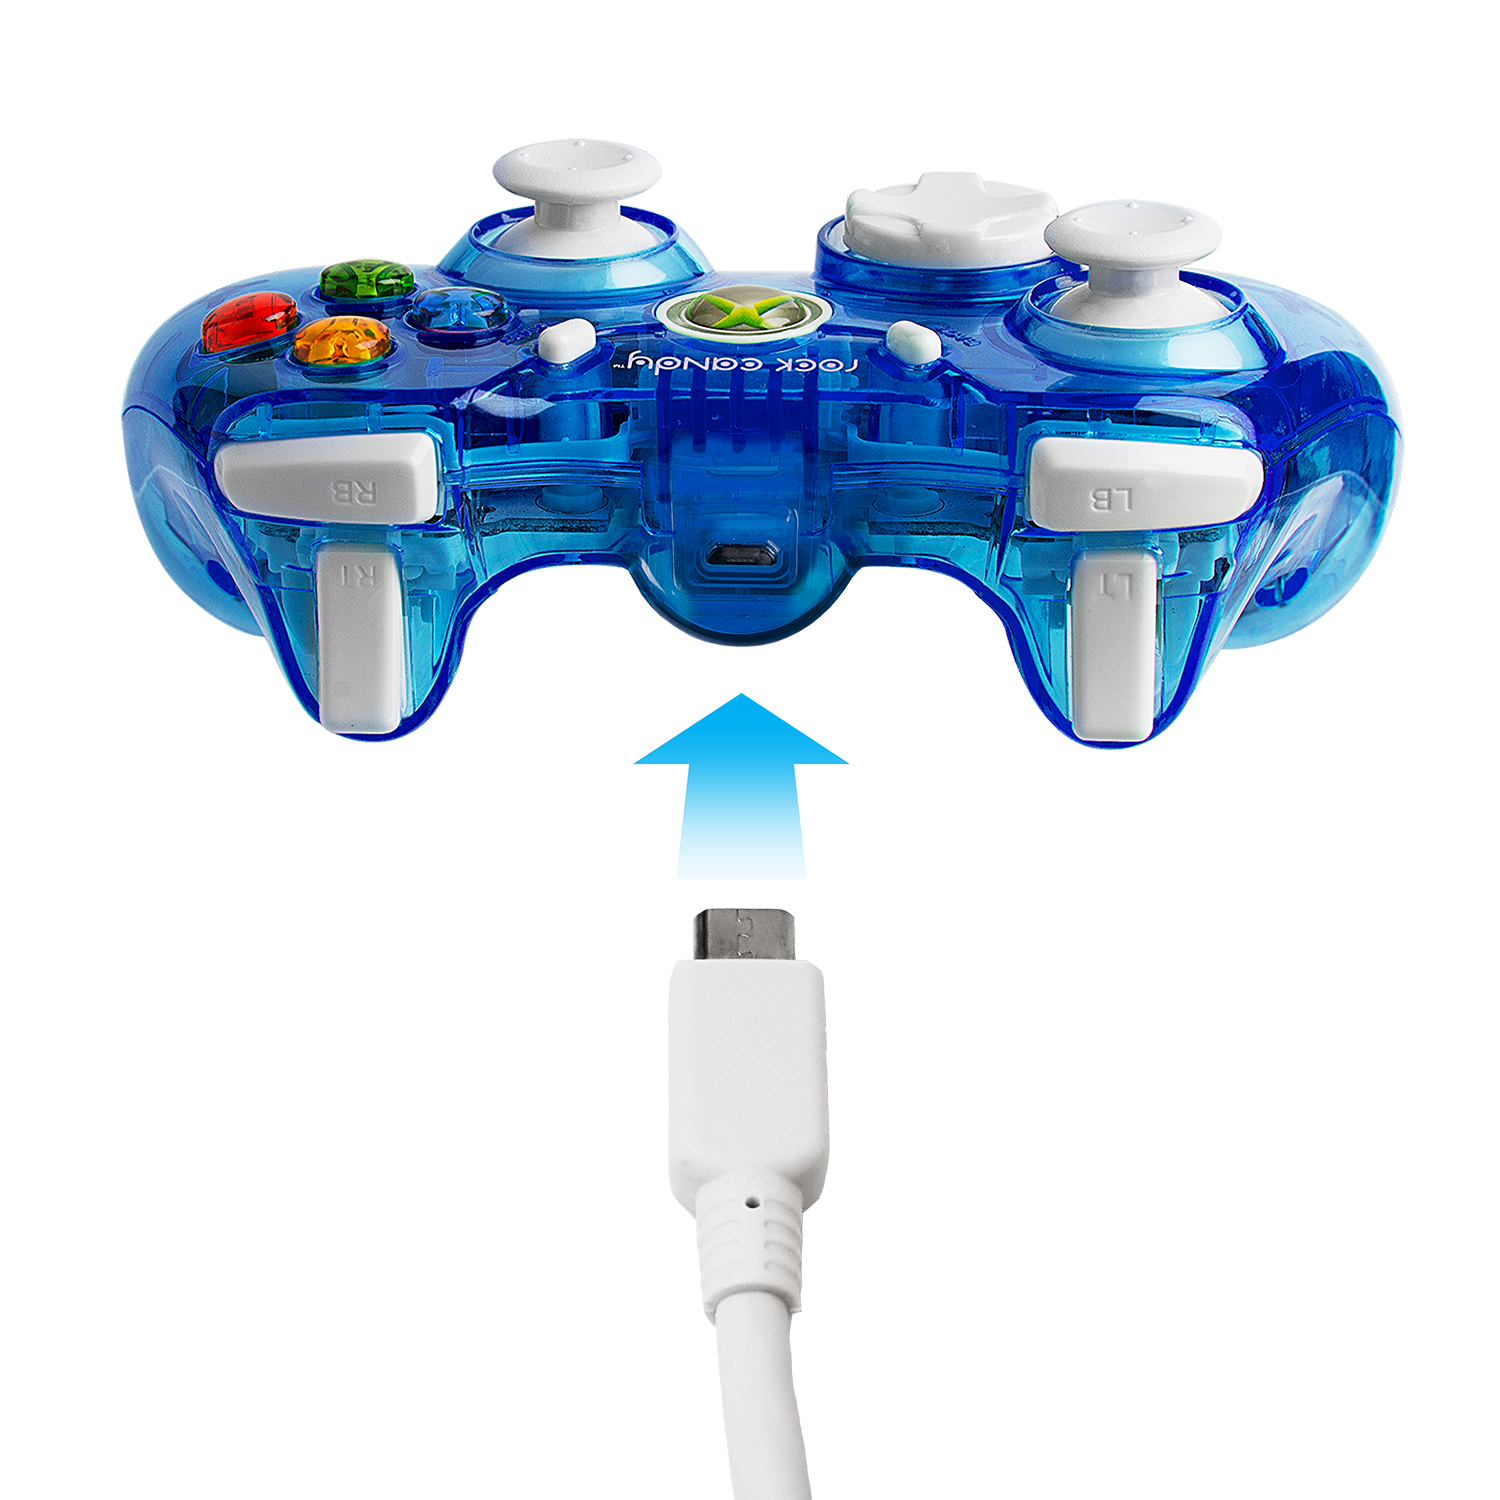 Pdp Rock Candy Xbox 360 Wired Controller Blueberry Boom 037 010 Na Holiday Brilliance Light Wiring Diagram Bl